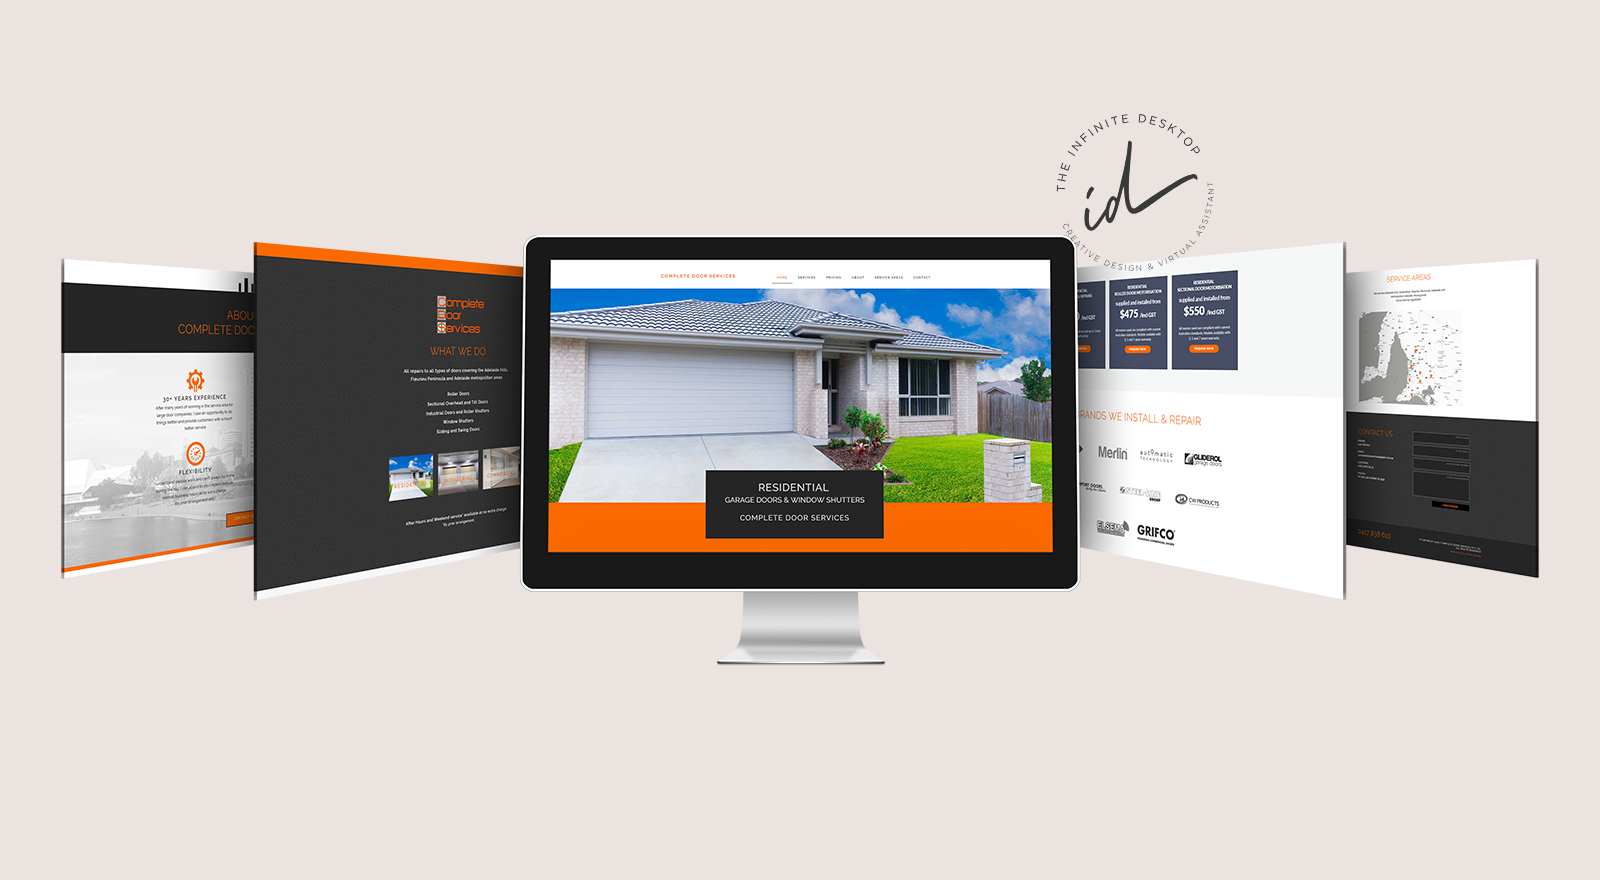 New website for Complete Door Services